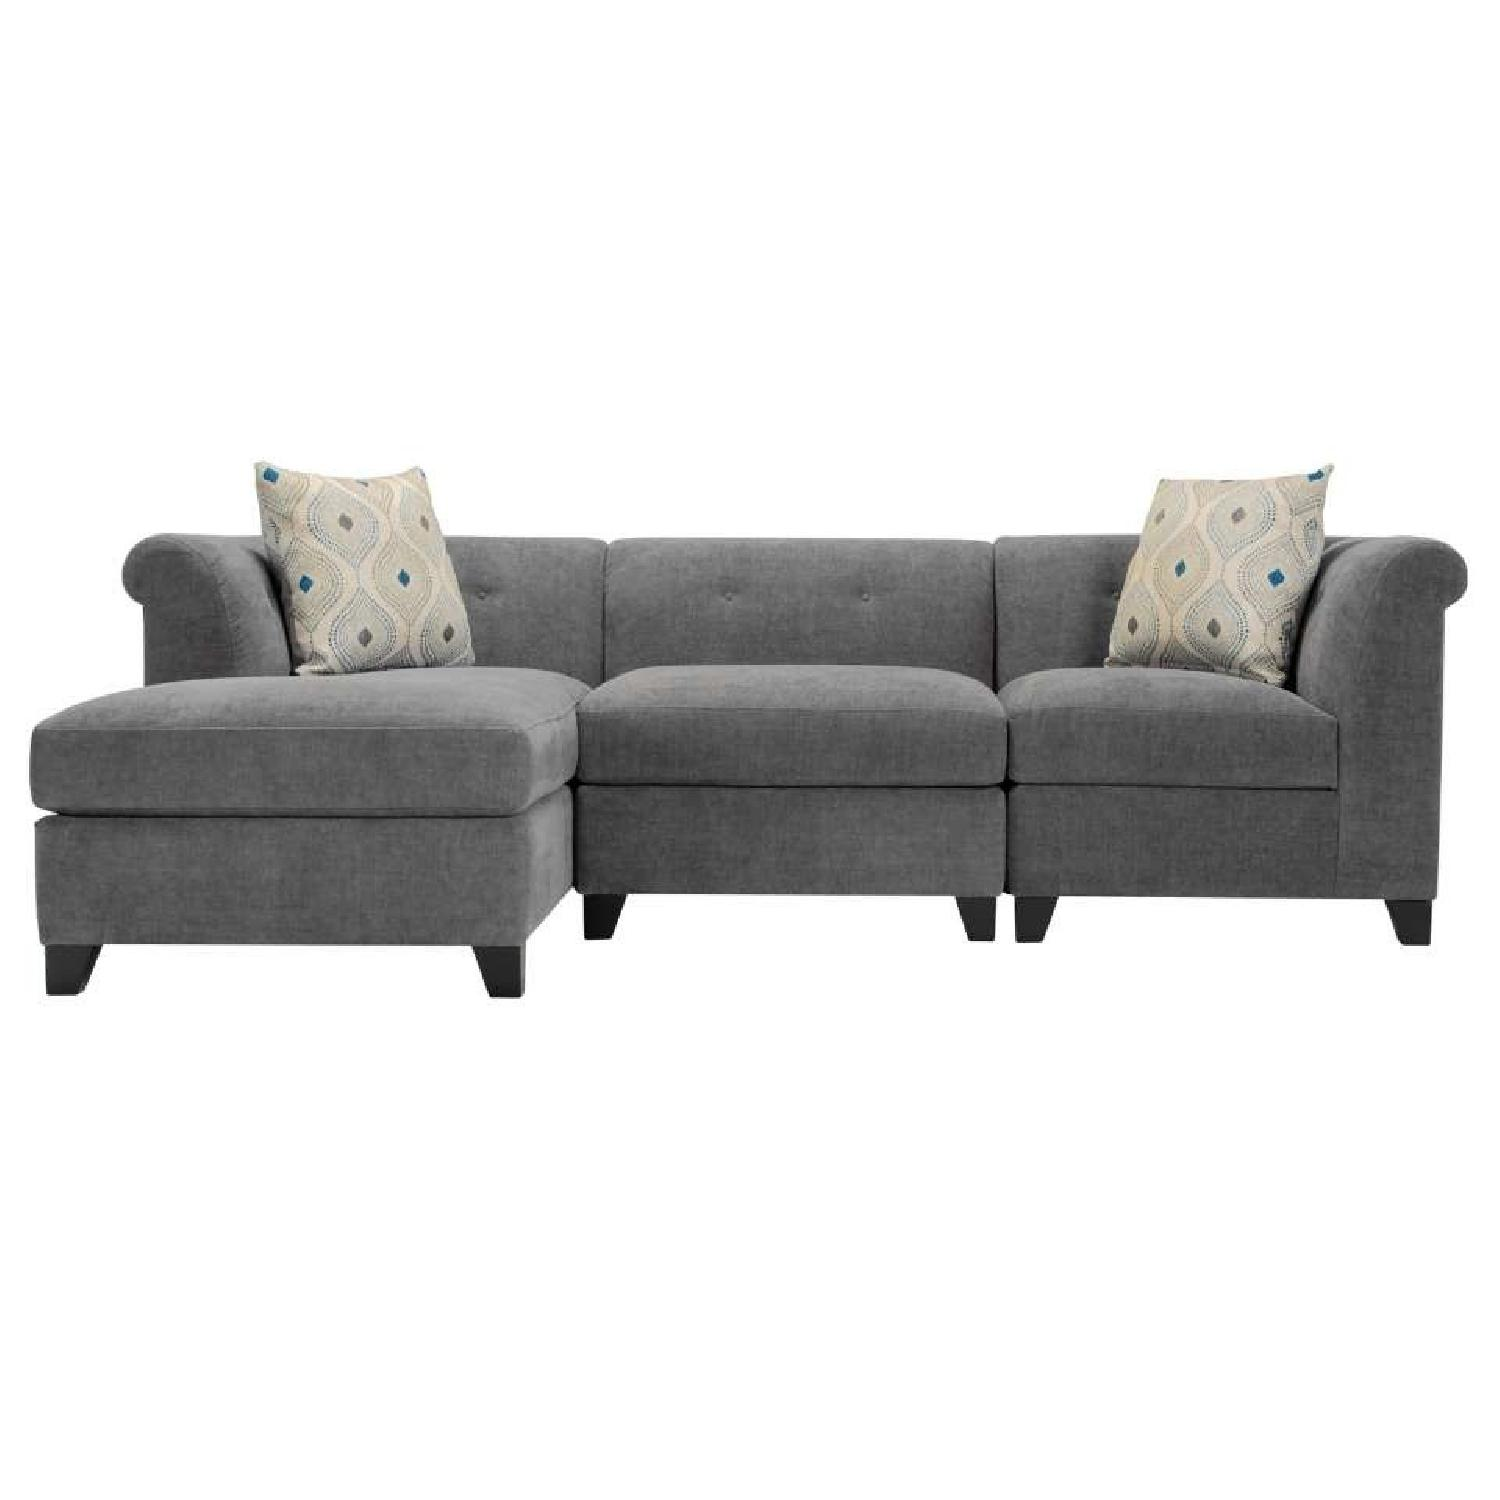 sectional la threshold piece width products pinnacle reclining trim item sofa z middle boy height with